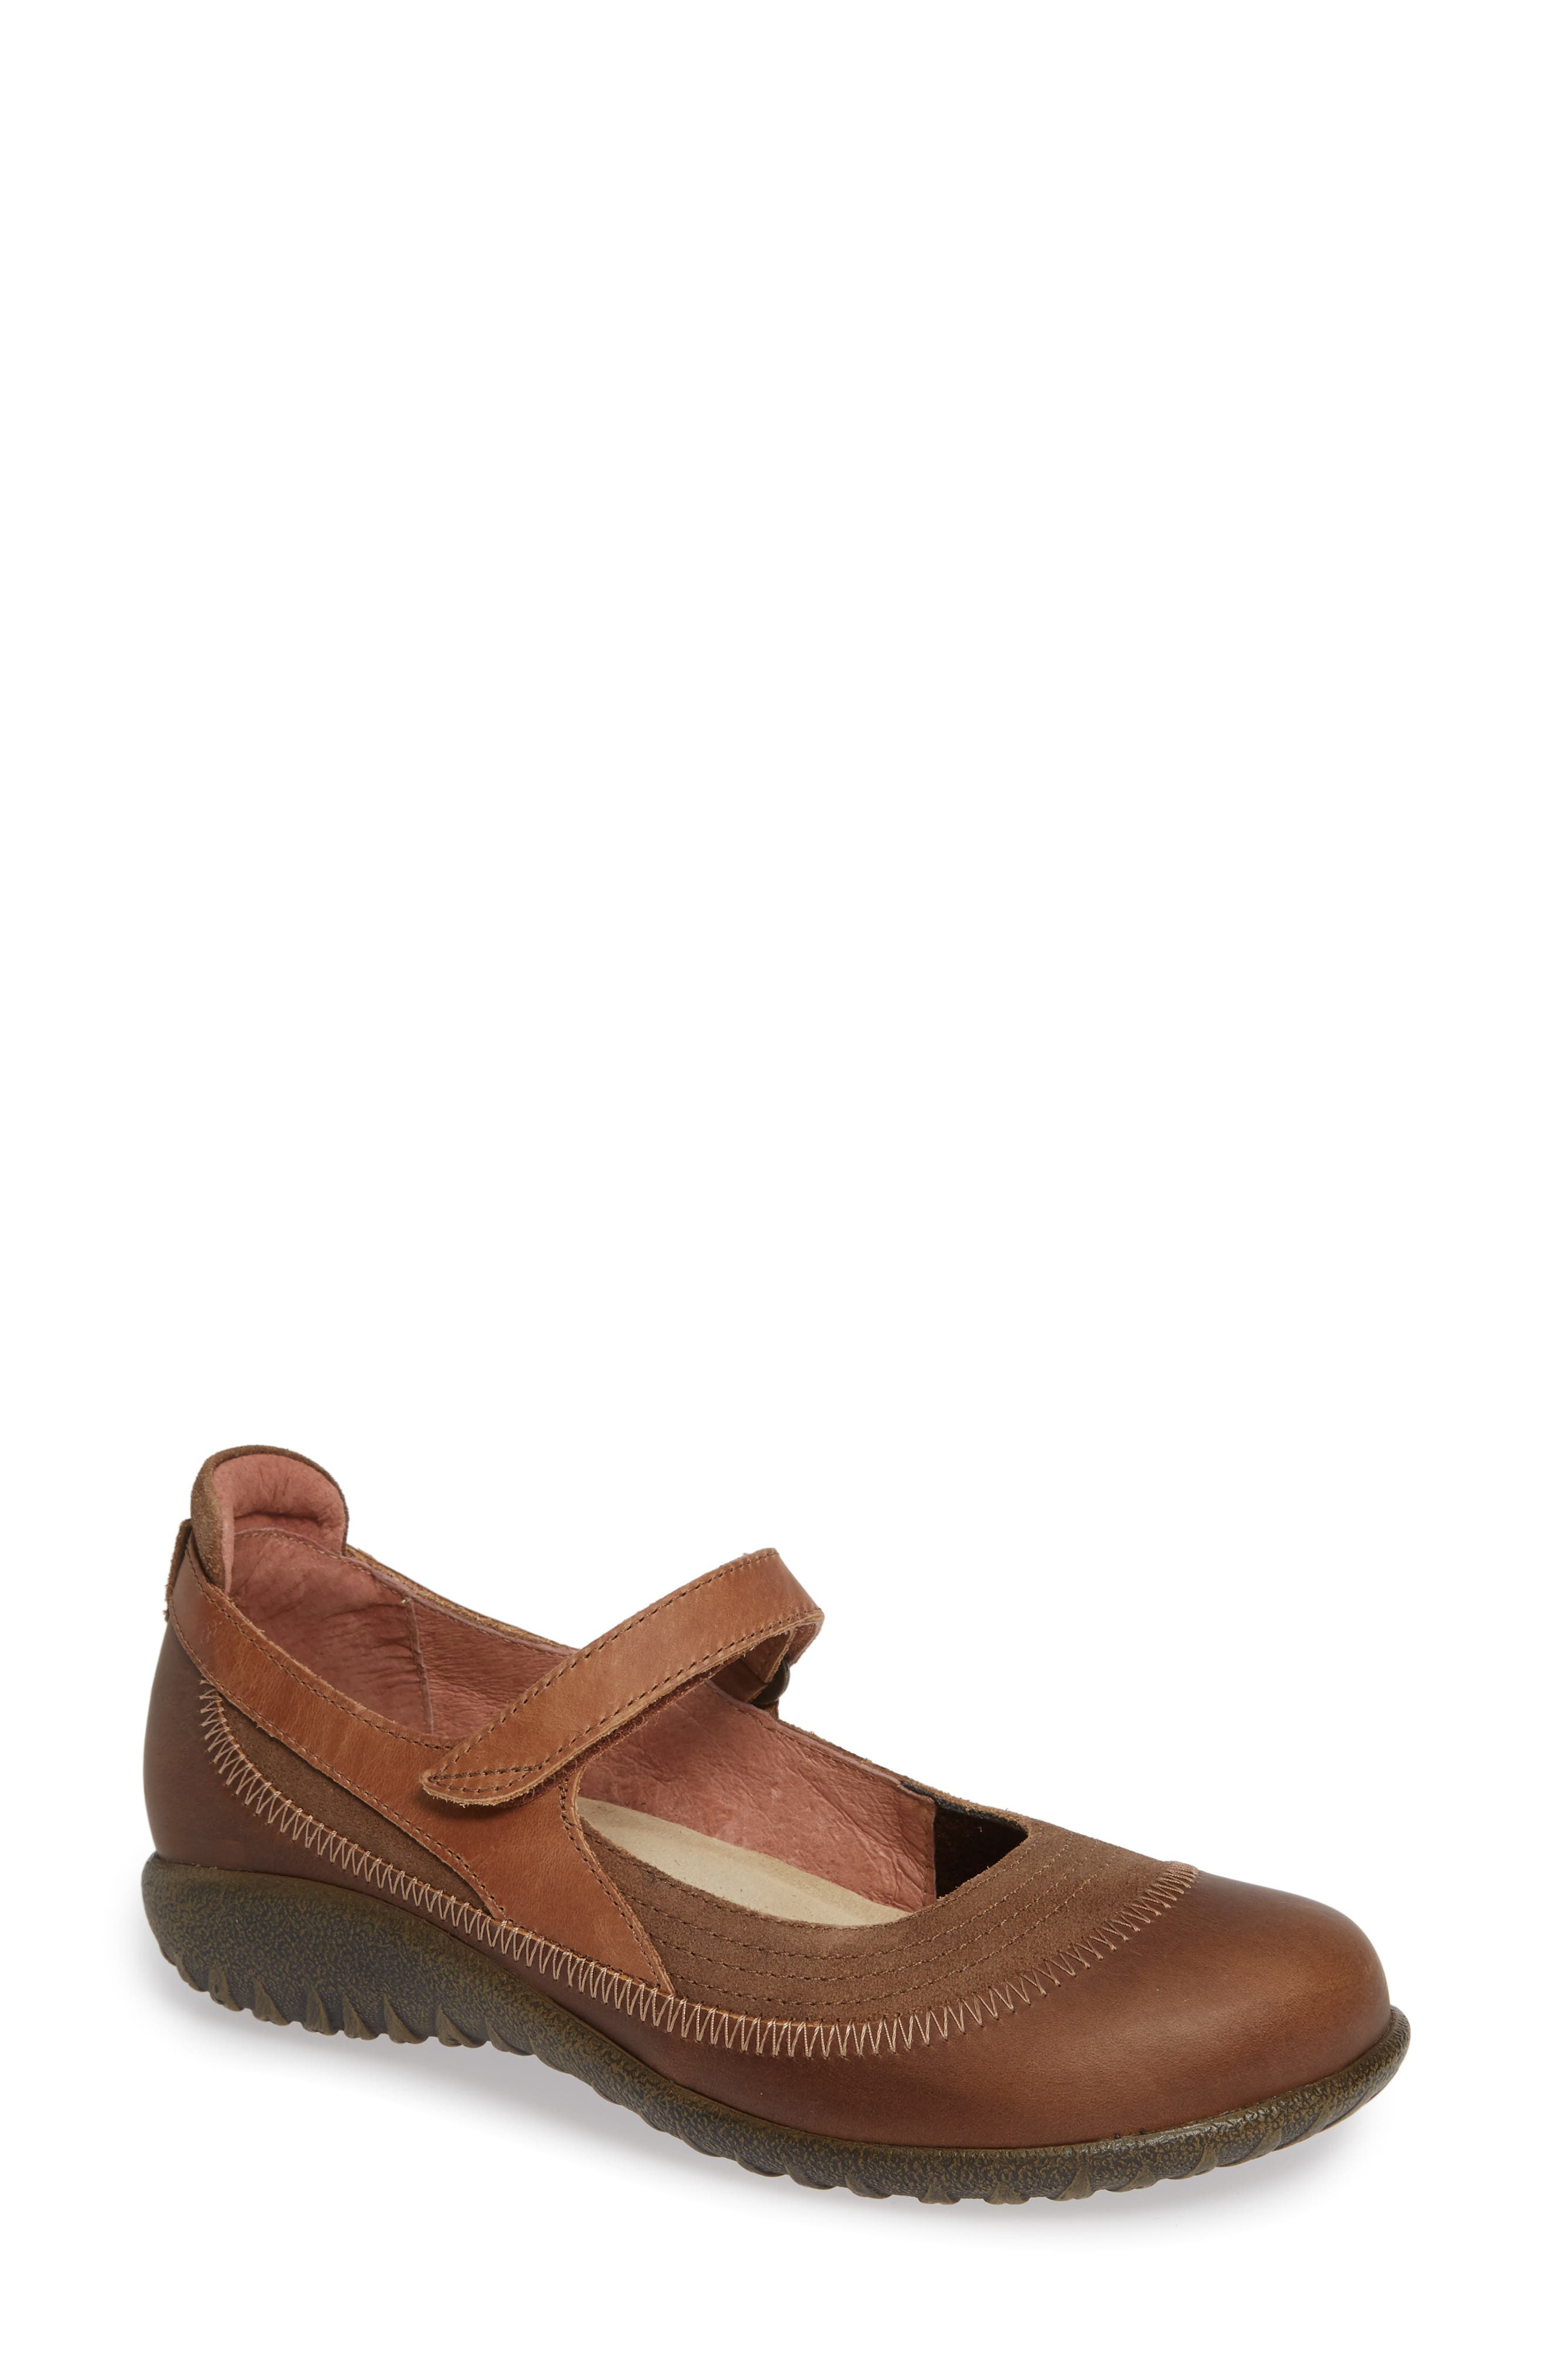 NAOT 'Kirei' Mary Jane, Main, color, ANTIQUE/ SADDLE LEATHER/ SUEDE